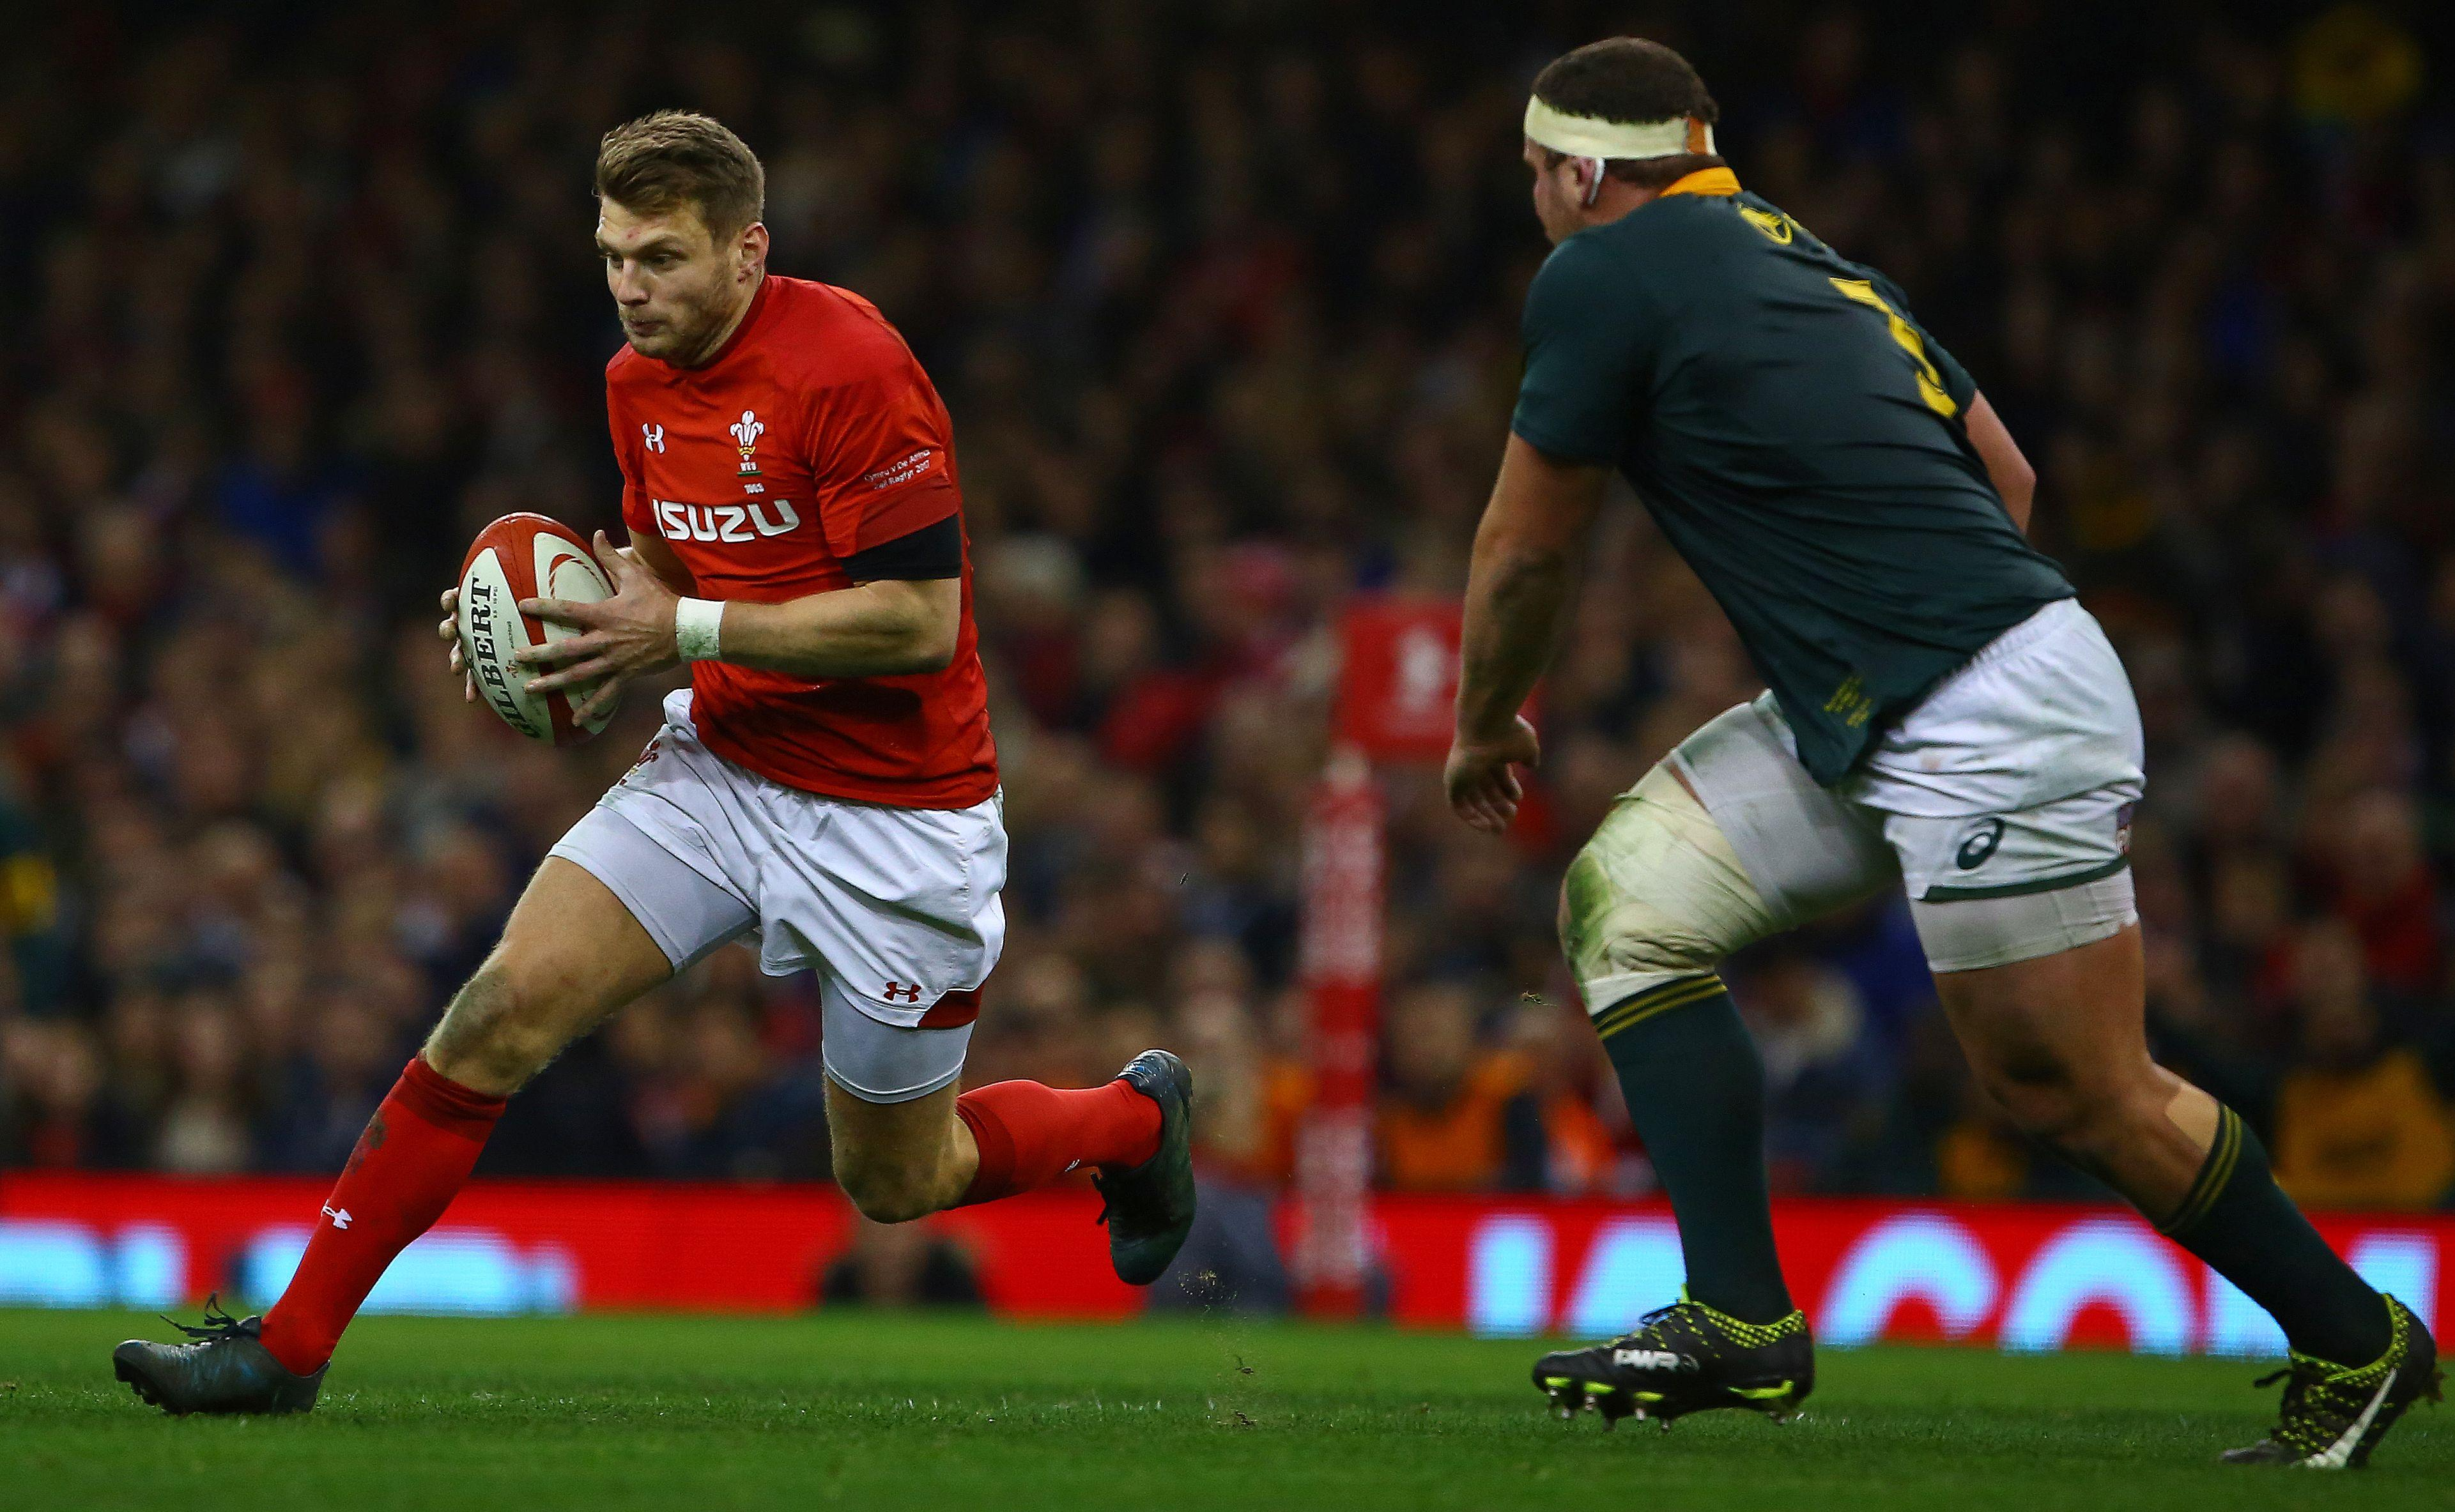 Wales fly-half Dan Biggar will the Six Nations match due to injury